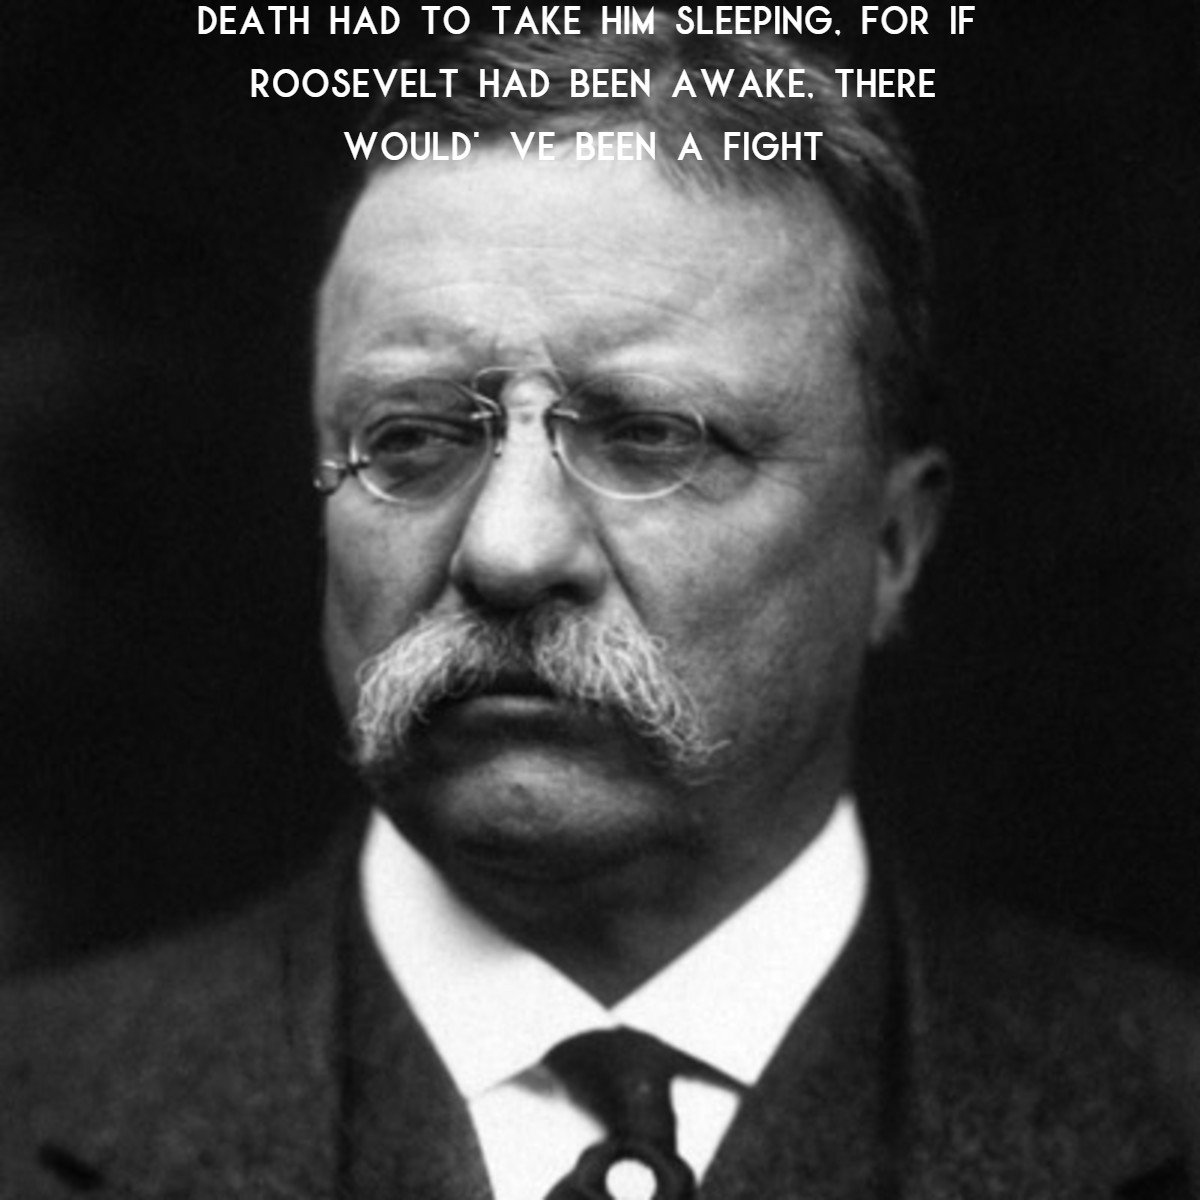 """Death had to take him sleeping, for if Roosevelt had been awake, there would've been a fight"" – Thomas R. Marshall (1200 x 1200)"